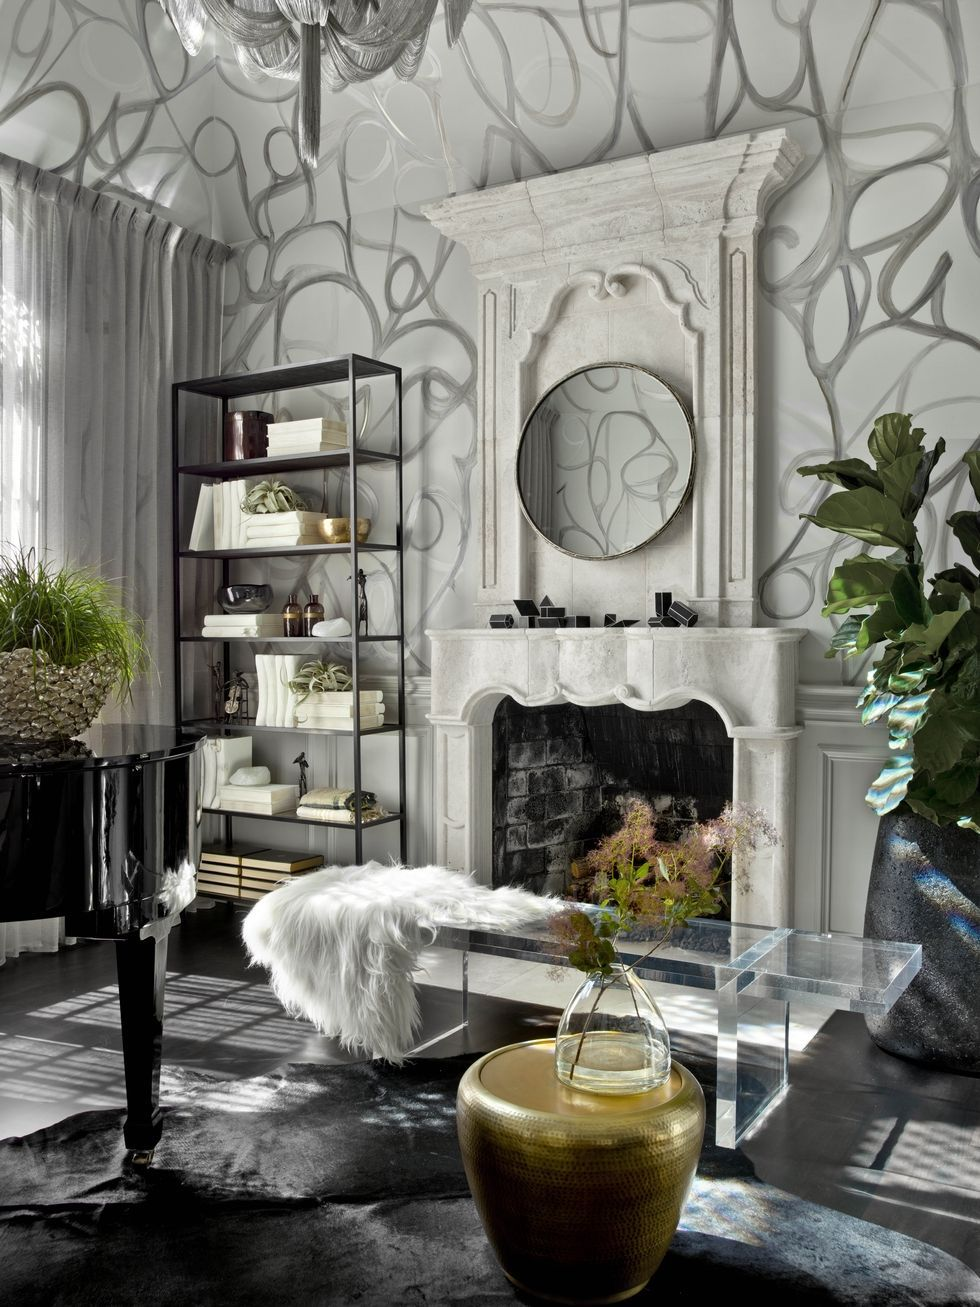 44 striking black white room ideas how to use black white decor and walls